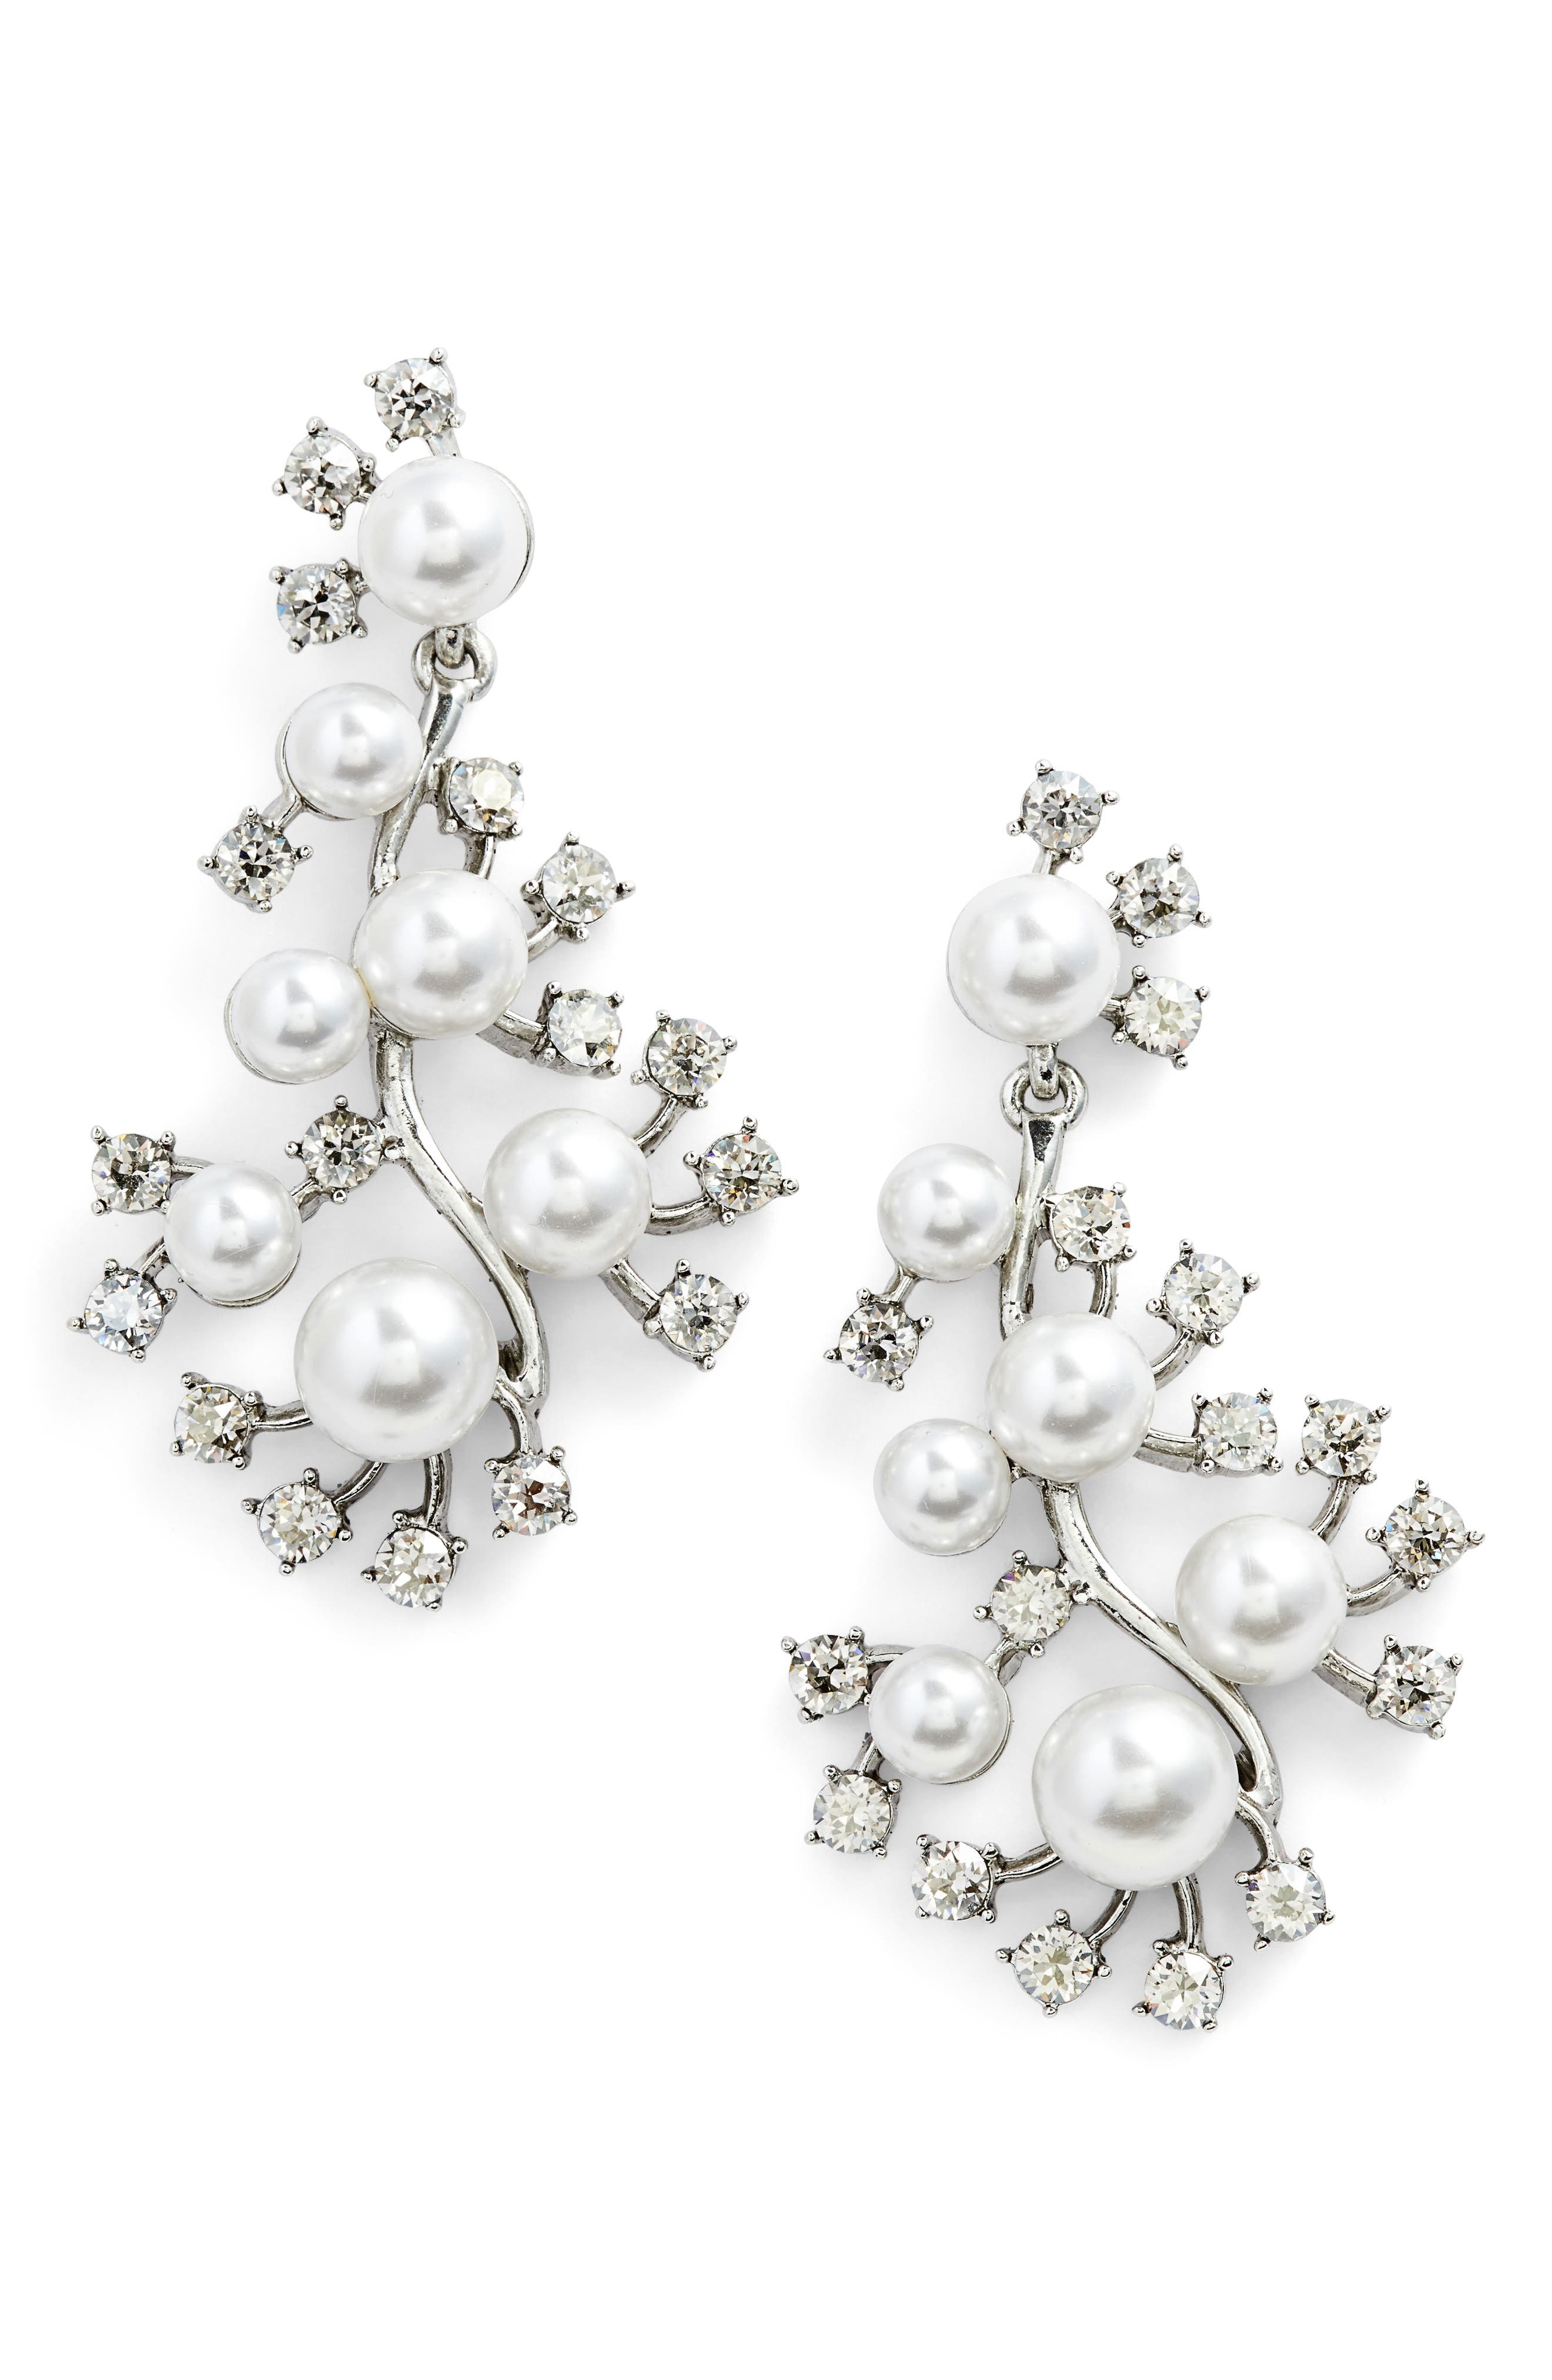 Scattered Imitation Pearl & Crystal Drop Earrings,                         Main,                         color, Crystal Shade / Silver